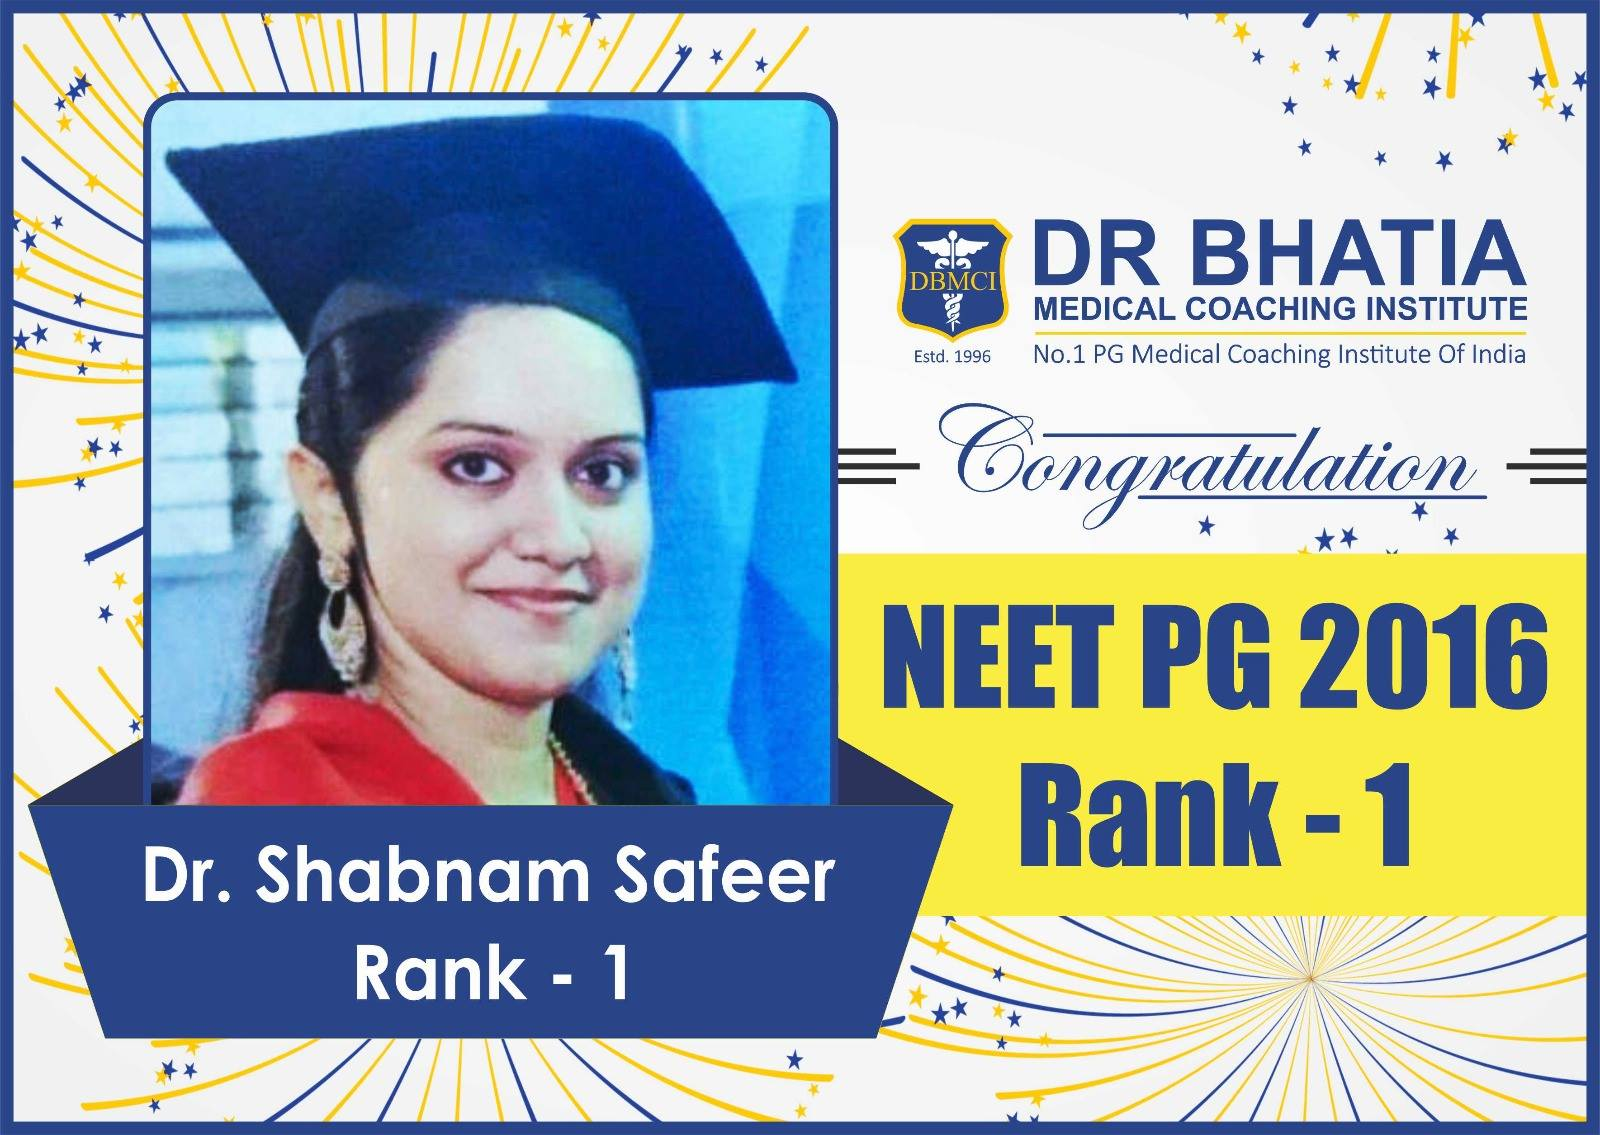 Dr. Shabnam Safeer - Rank 1 in NEET PG Jan 2017 Topper